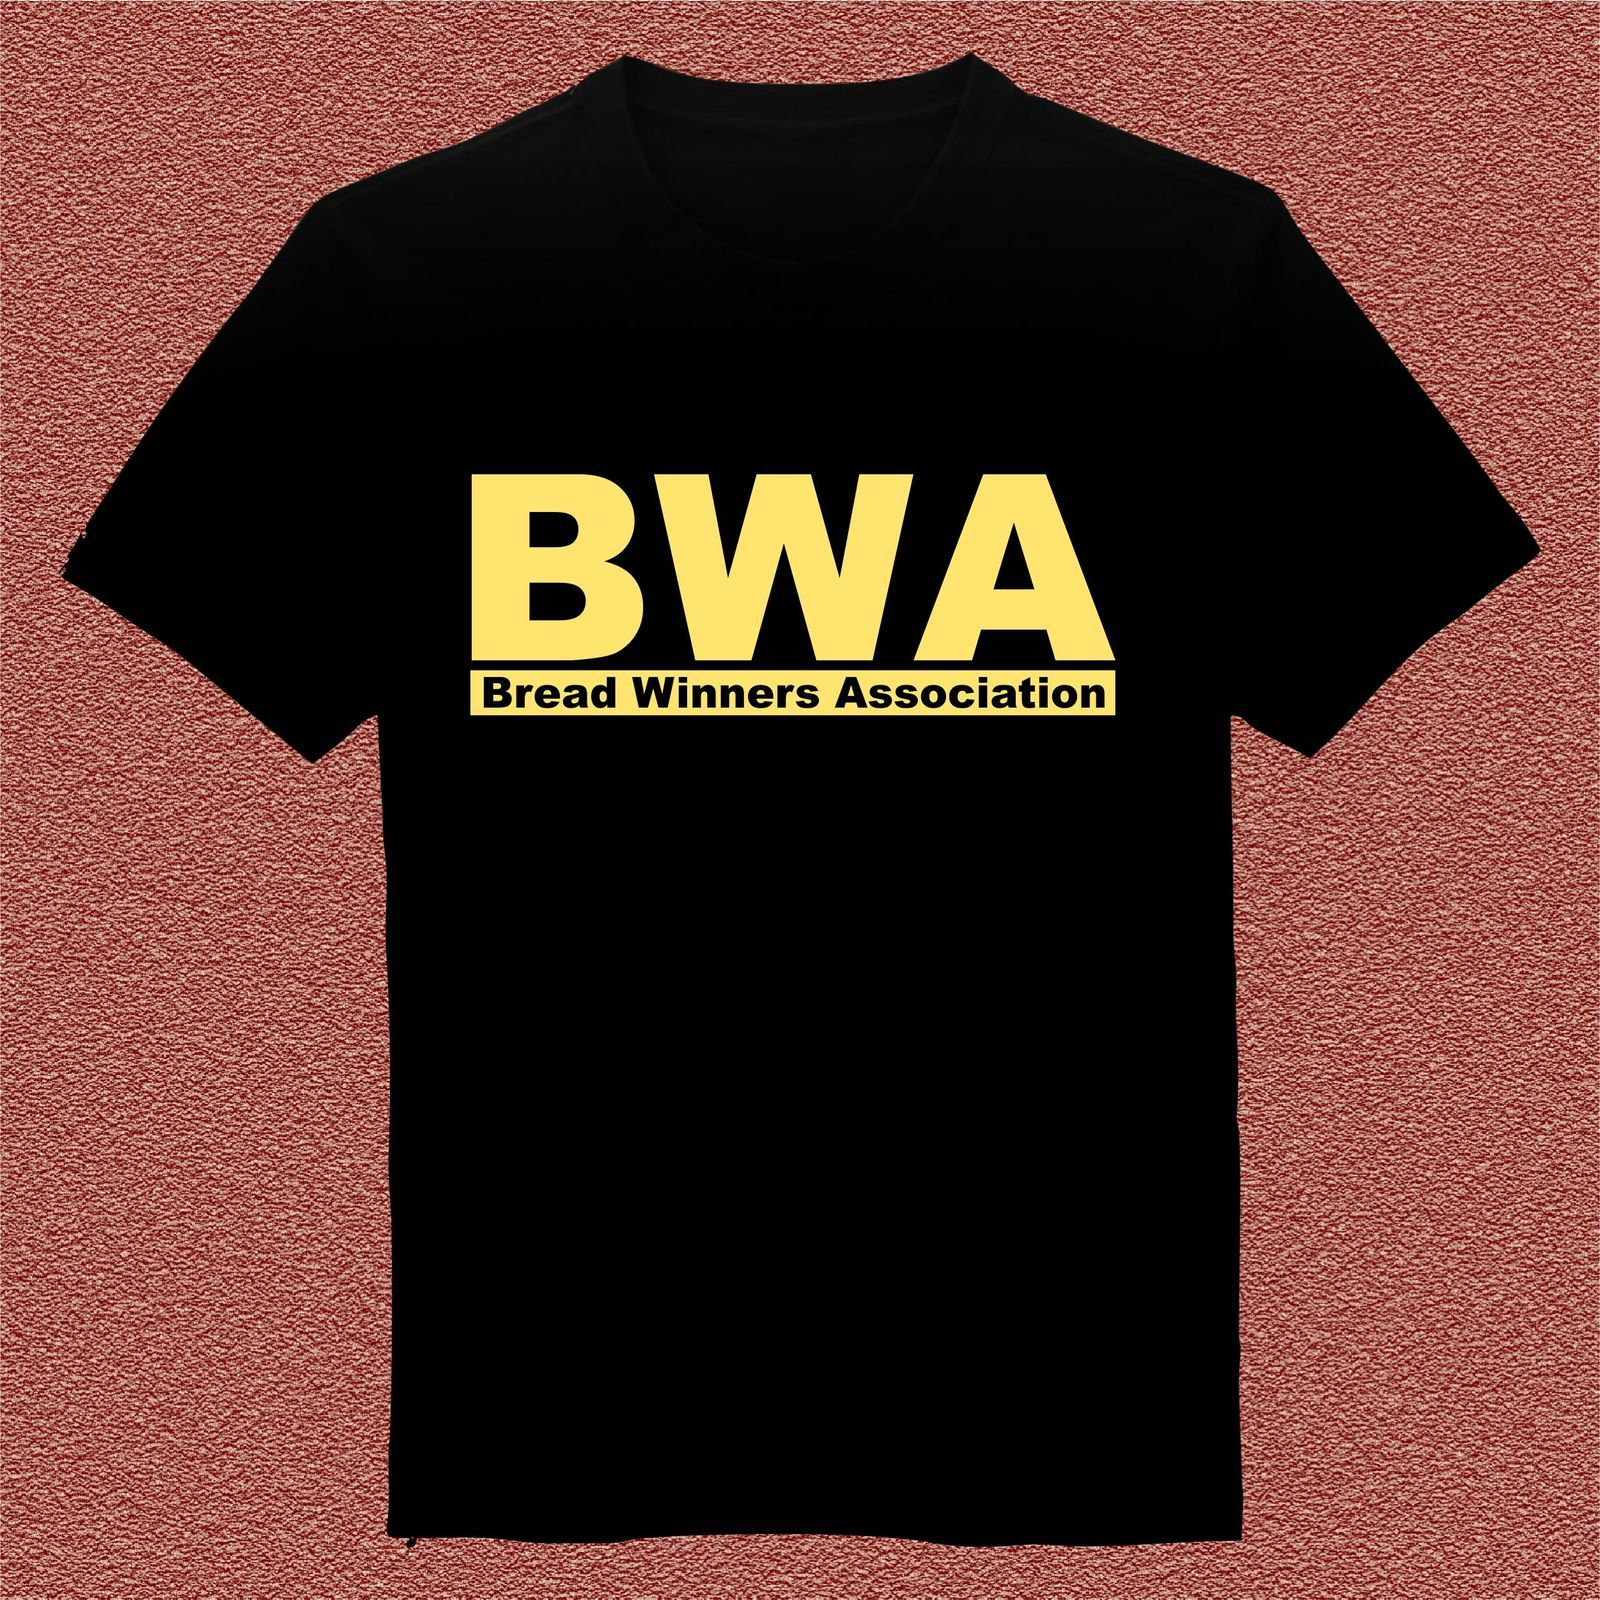 BWA, Bread Winners Association, Kevin Gates OUR T-SHIRTS ARE